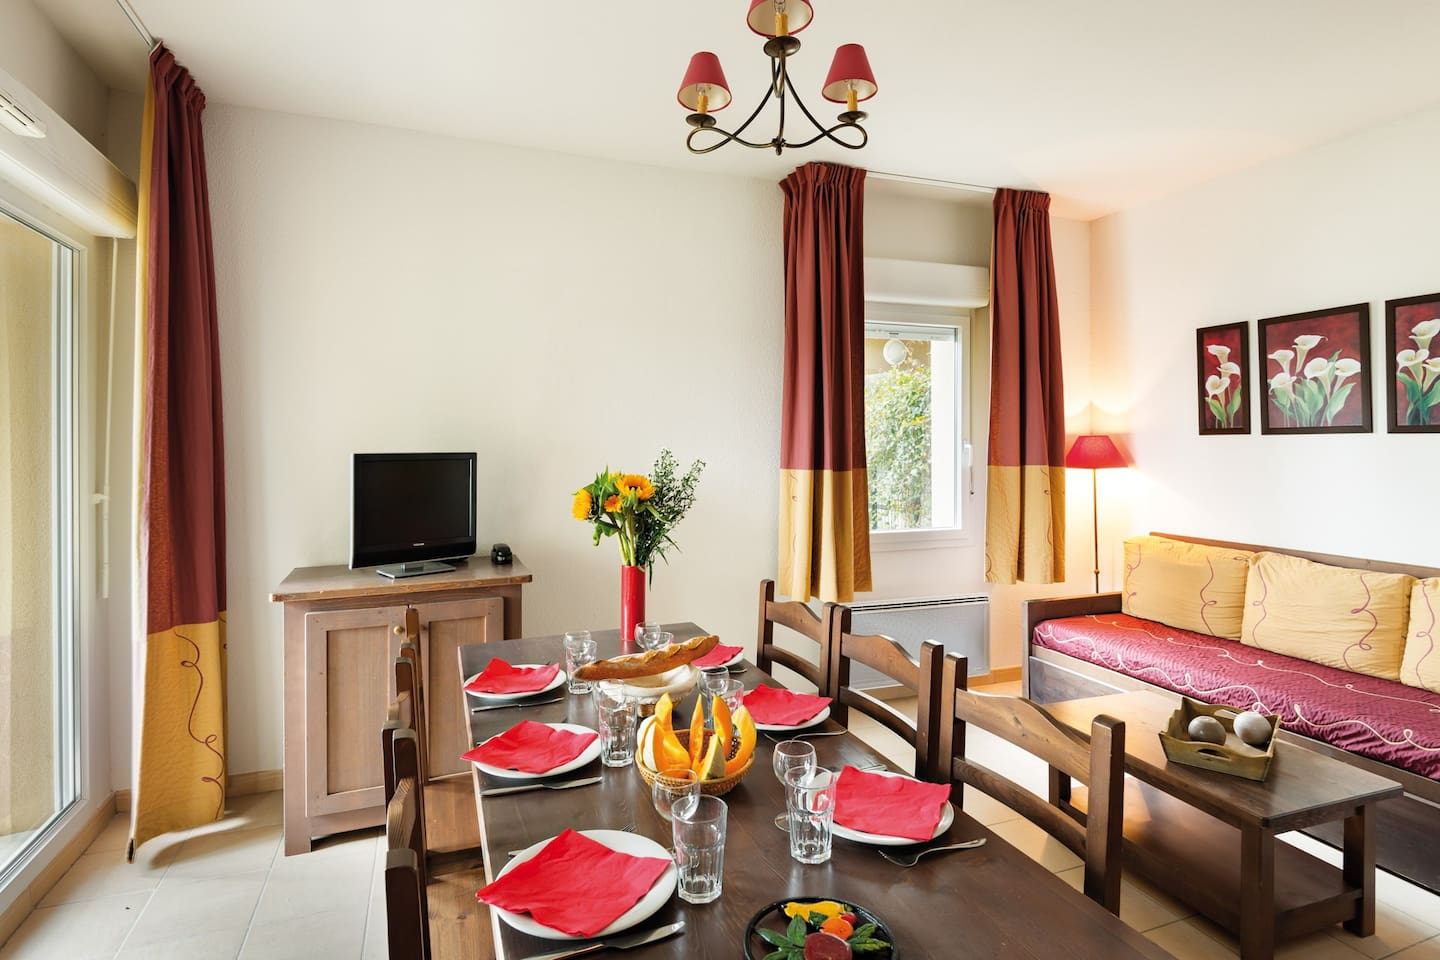 Welcome to your cozy and bright apartment near Bergerac!